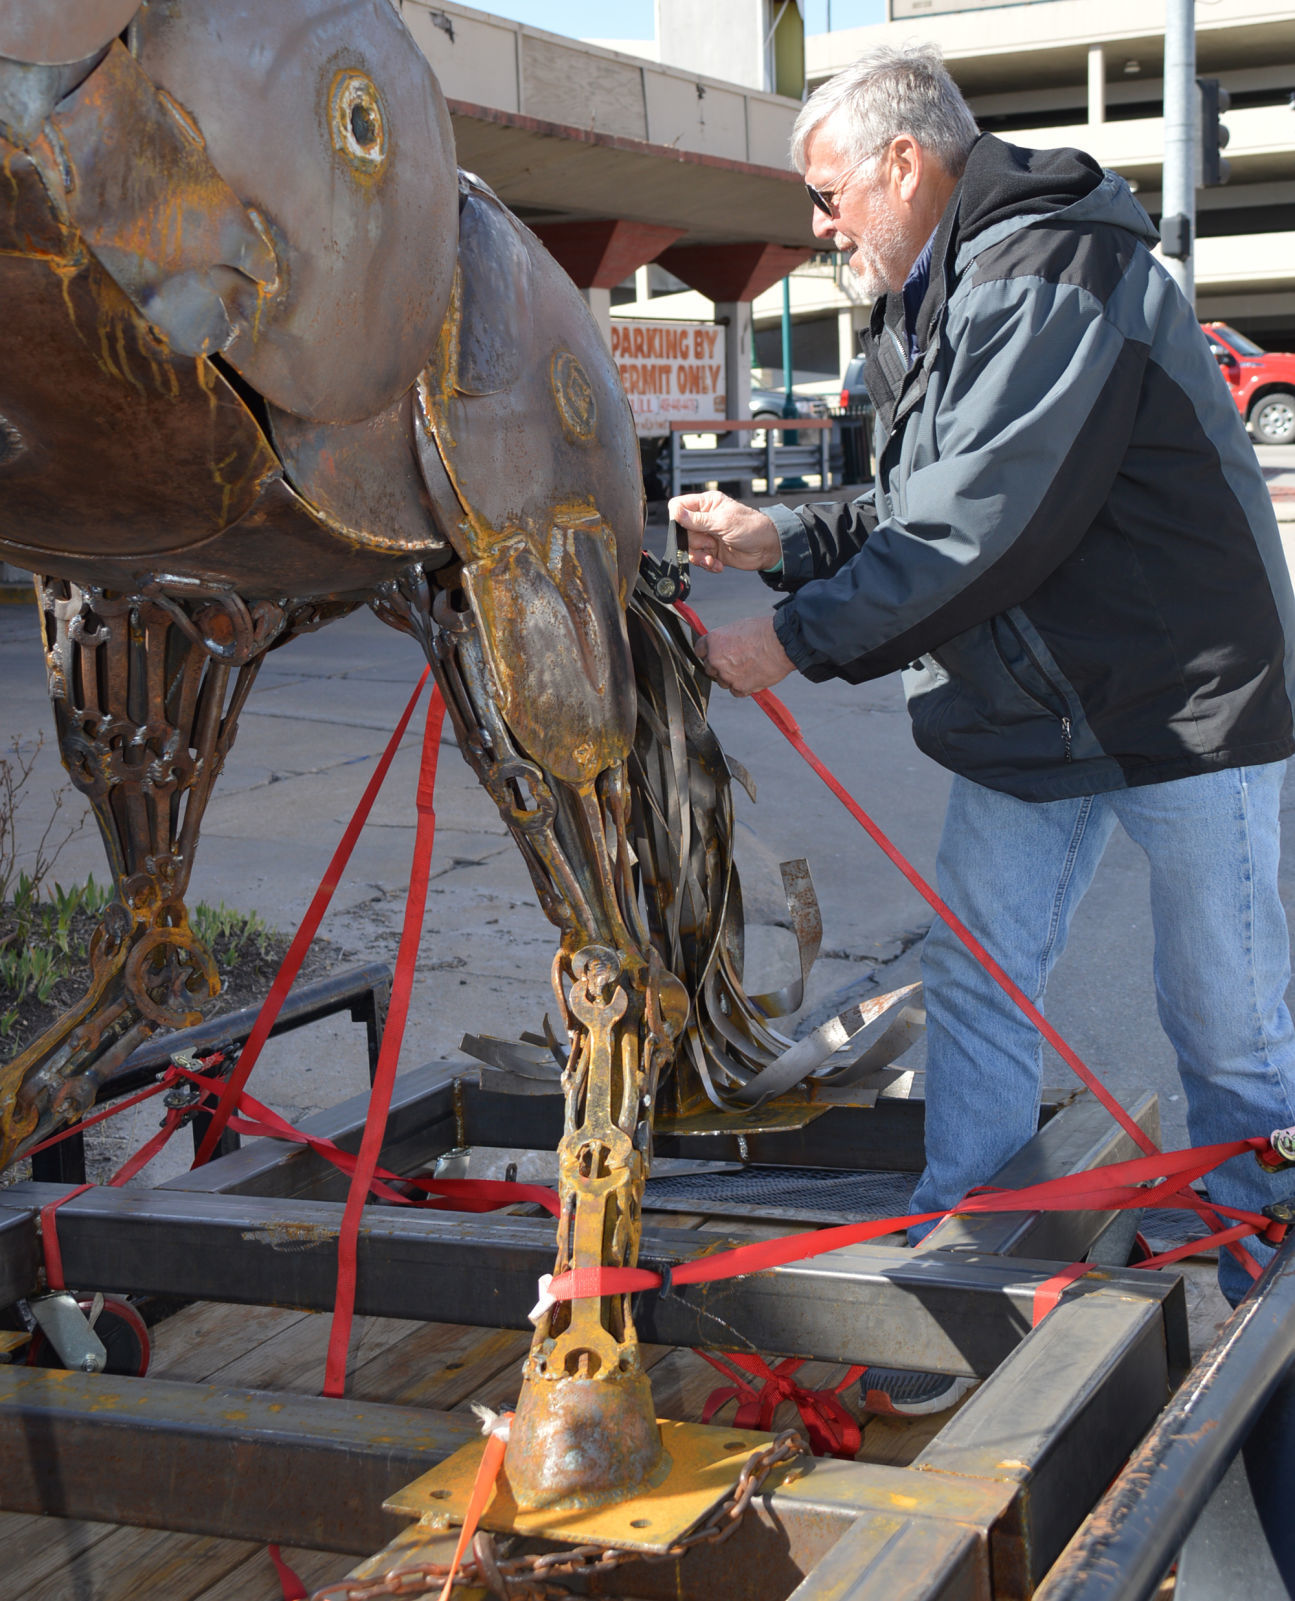 Artist Kuzara Creates Life Size Rearing Horse From Old Metal Pieces Visual Art Journalstar Com